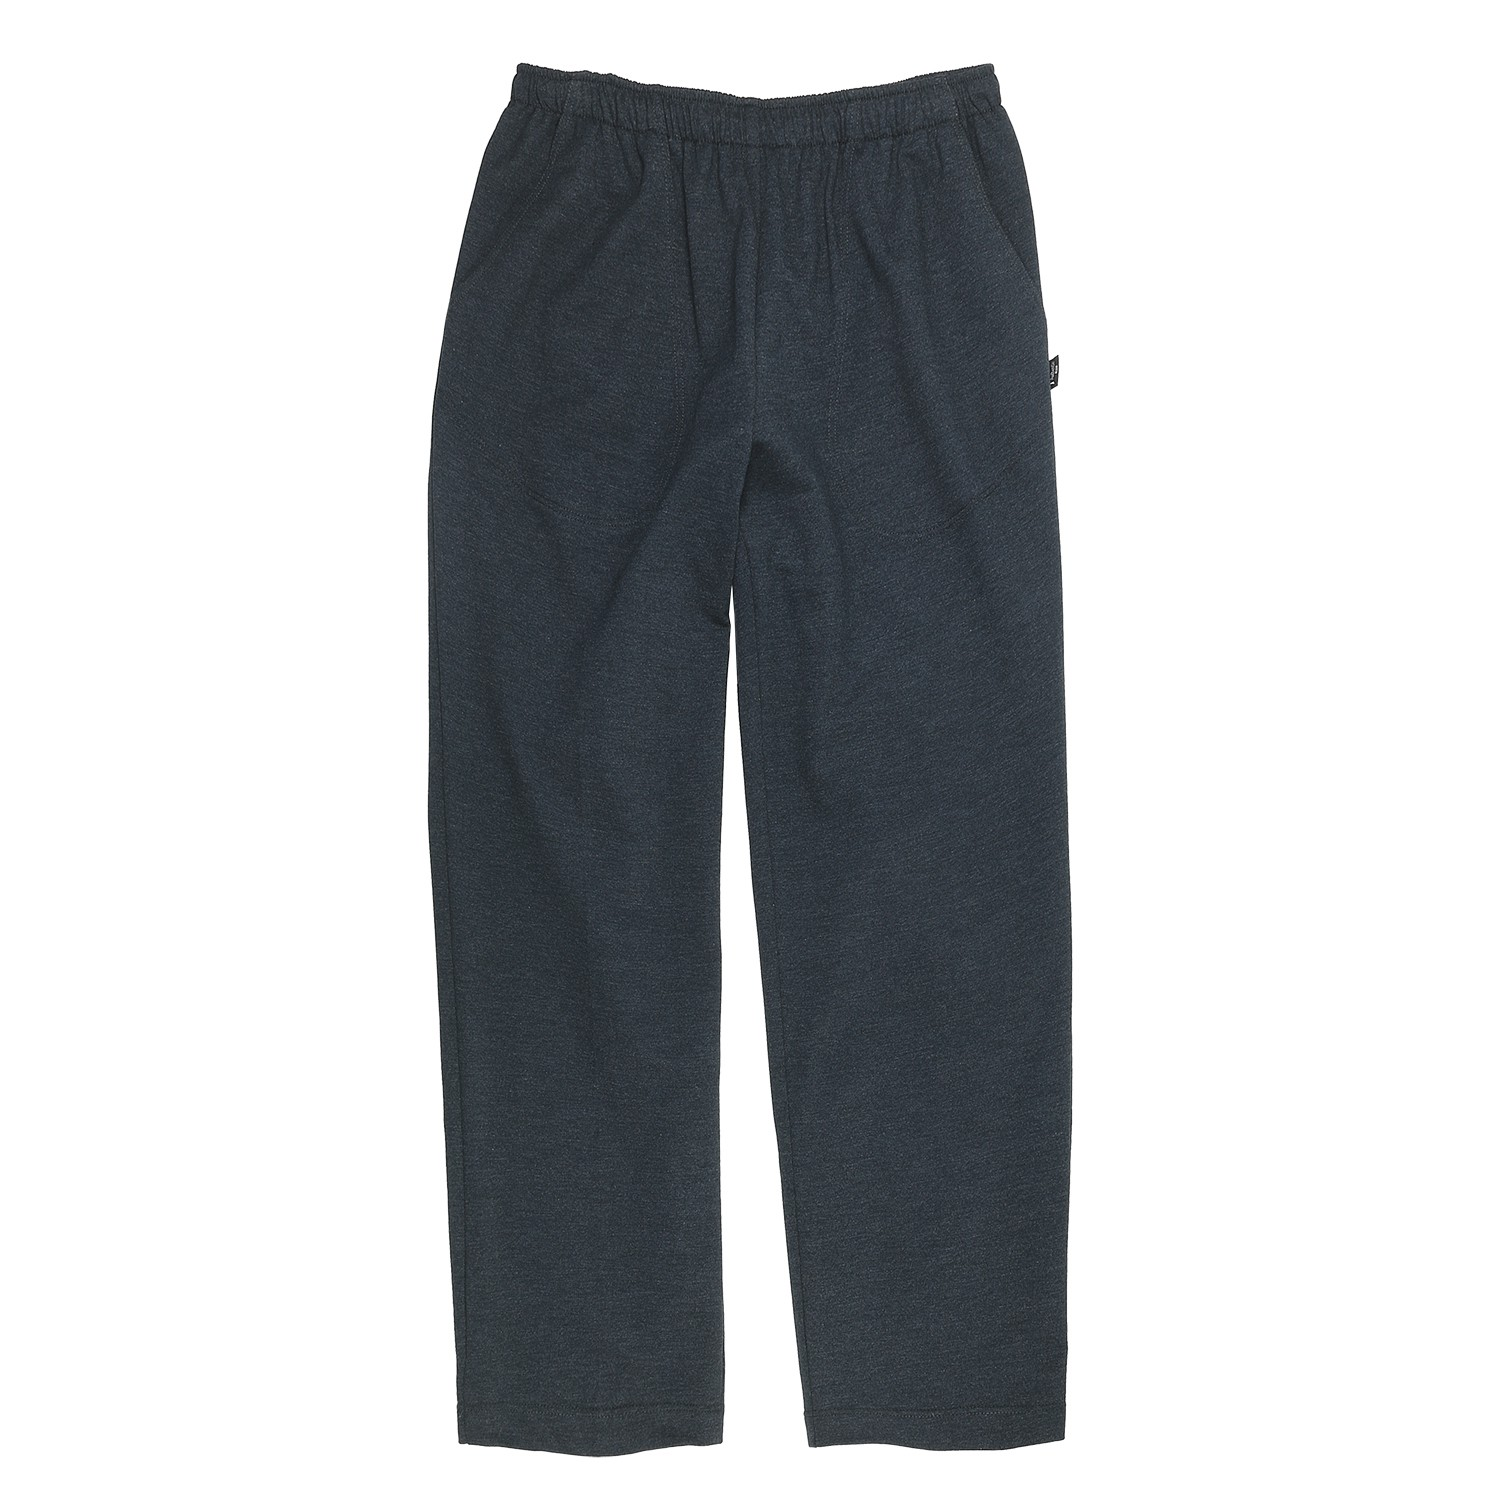 Image de détail de Pantalon de jogging anthracite by AUTHENTIC KLEIN - grandes tailles